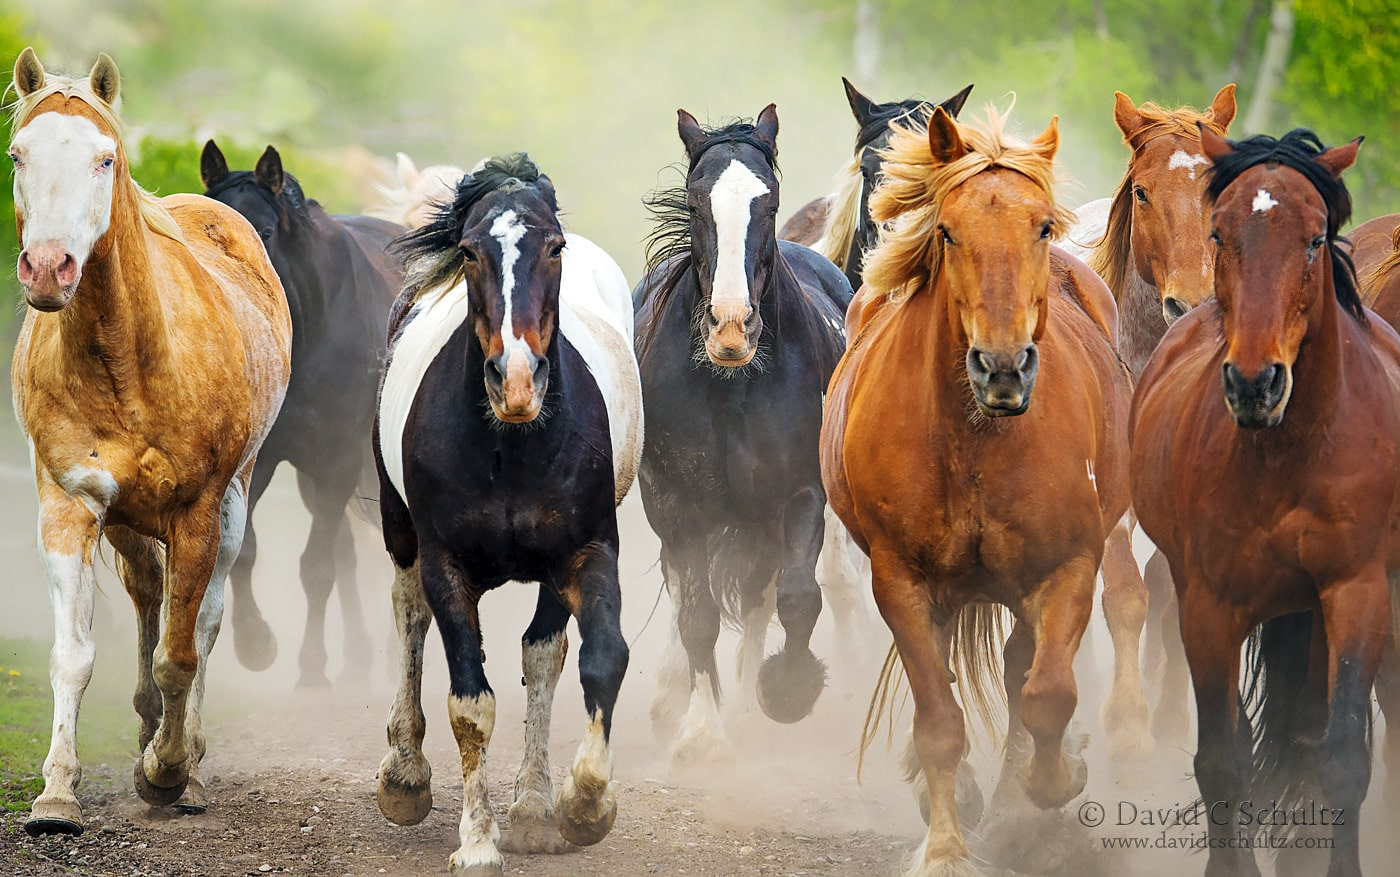 Horse round-up in Wyoming - Image # 47-1661